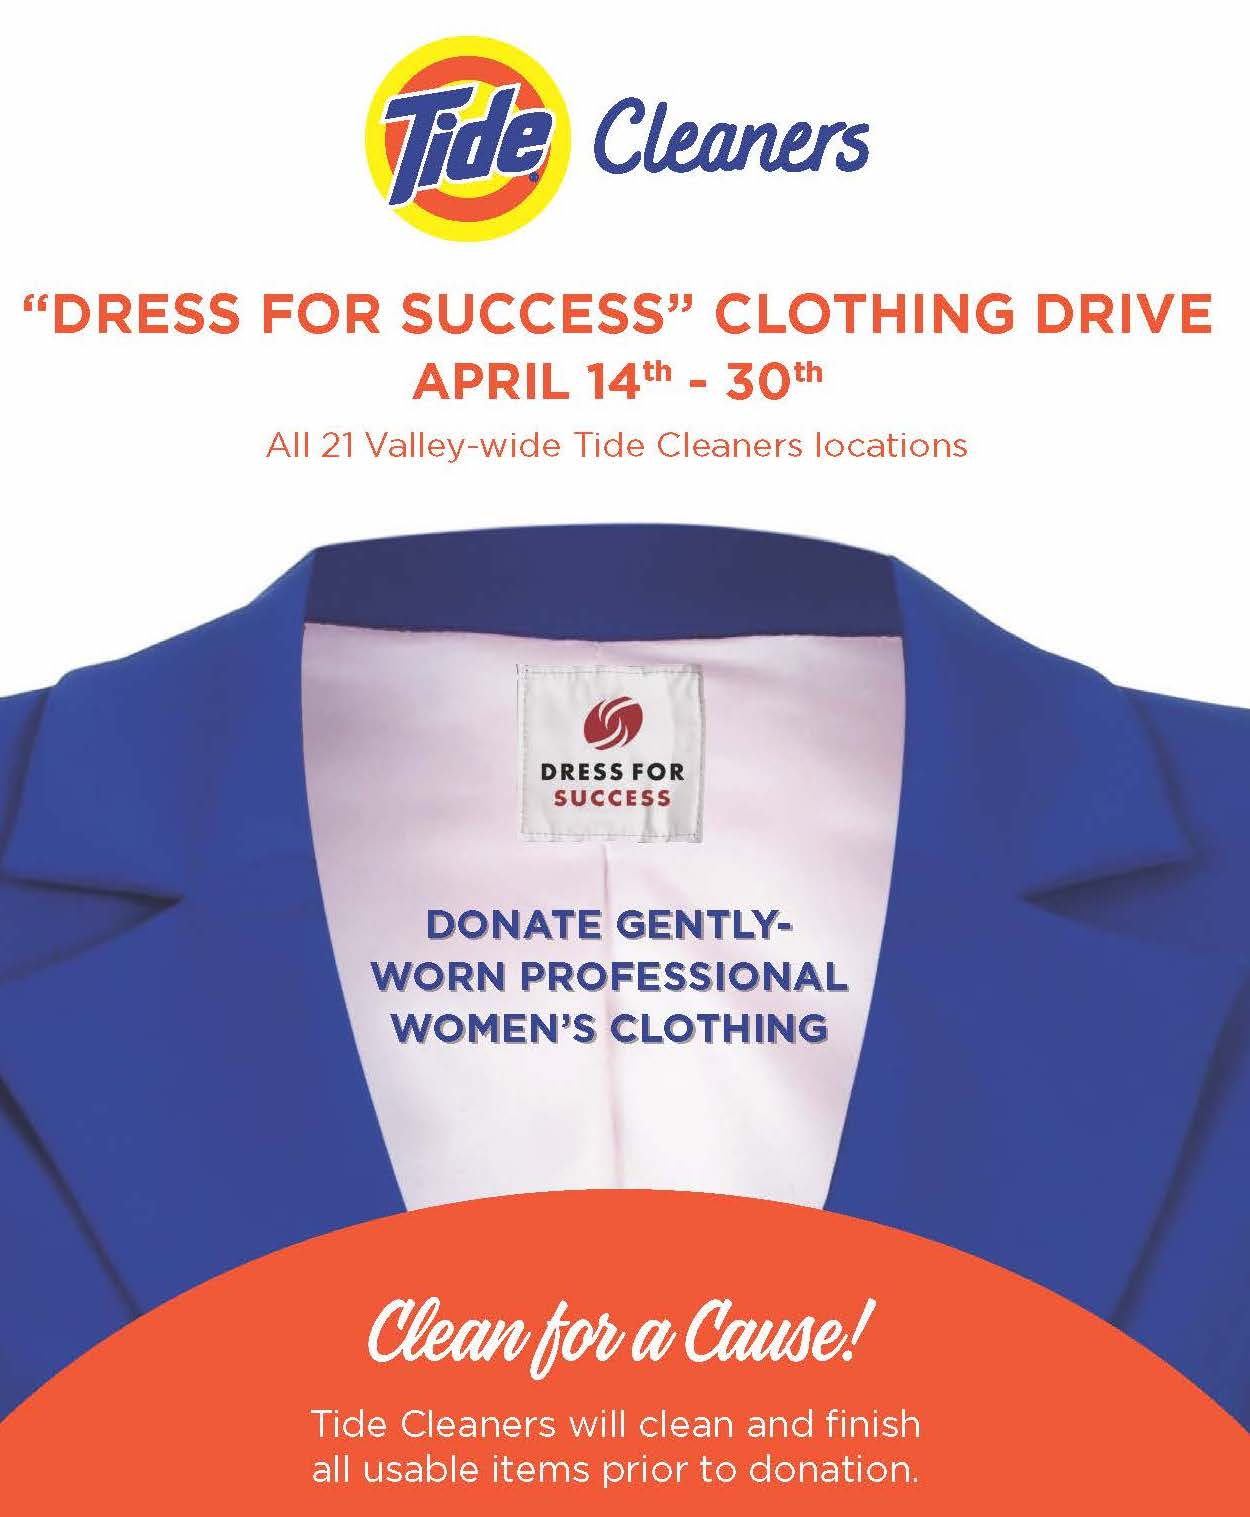 Win FREE Dry Cleaning for a Year on April 13th!